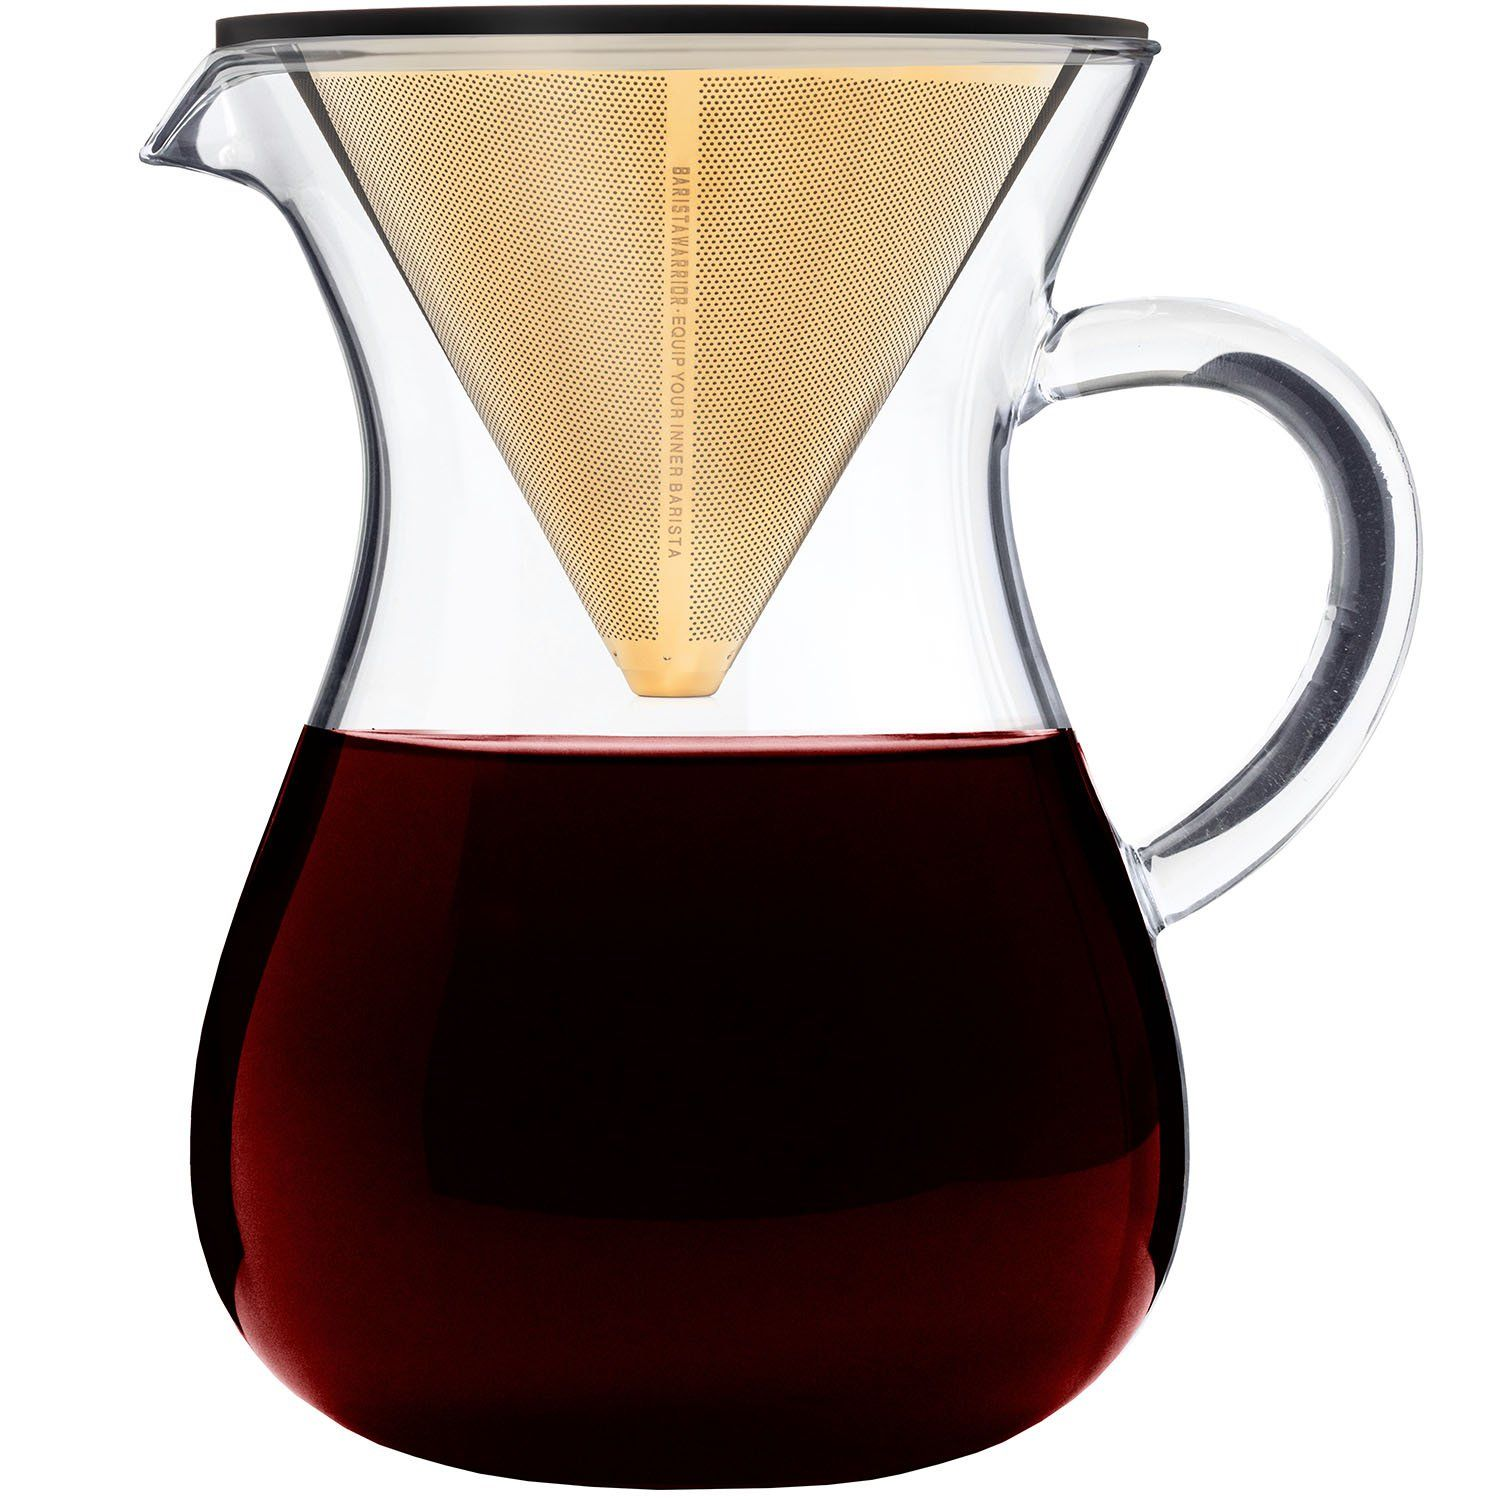 Pour Over Coffee Dripper Maker Set 5 Cup 27 oz